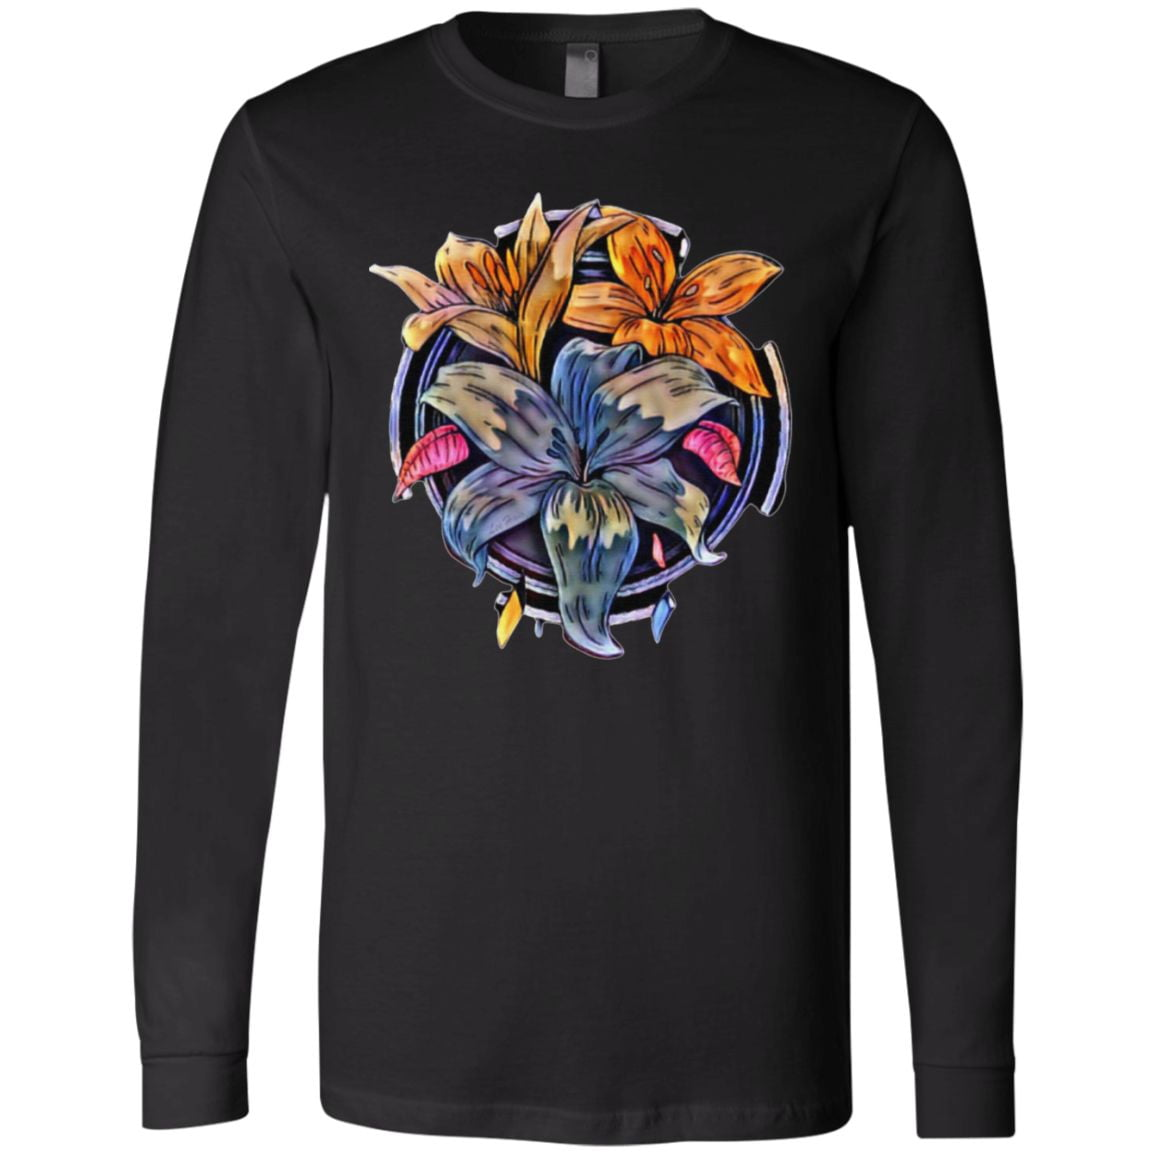 Lily Flowers T-Shirt